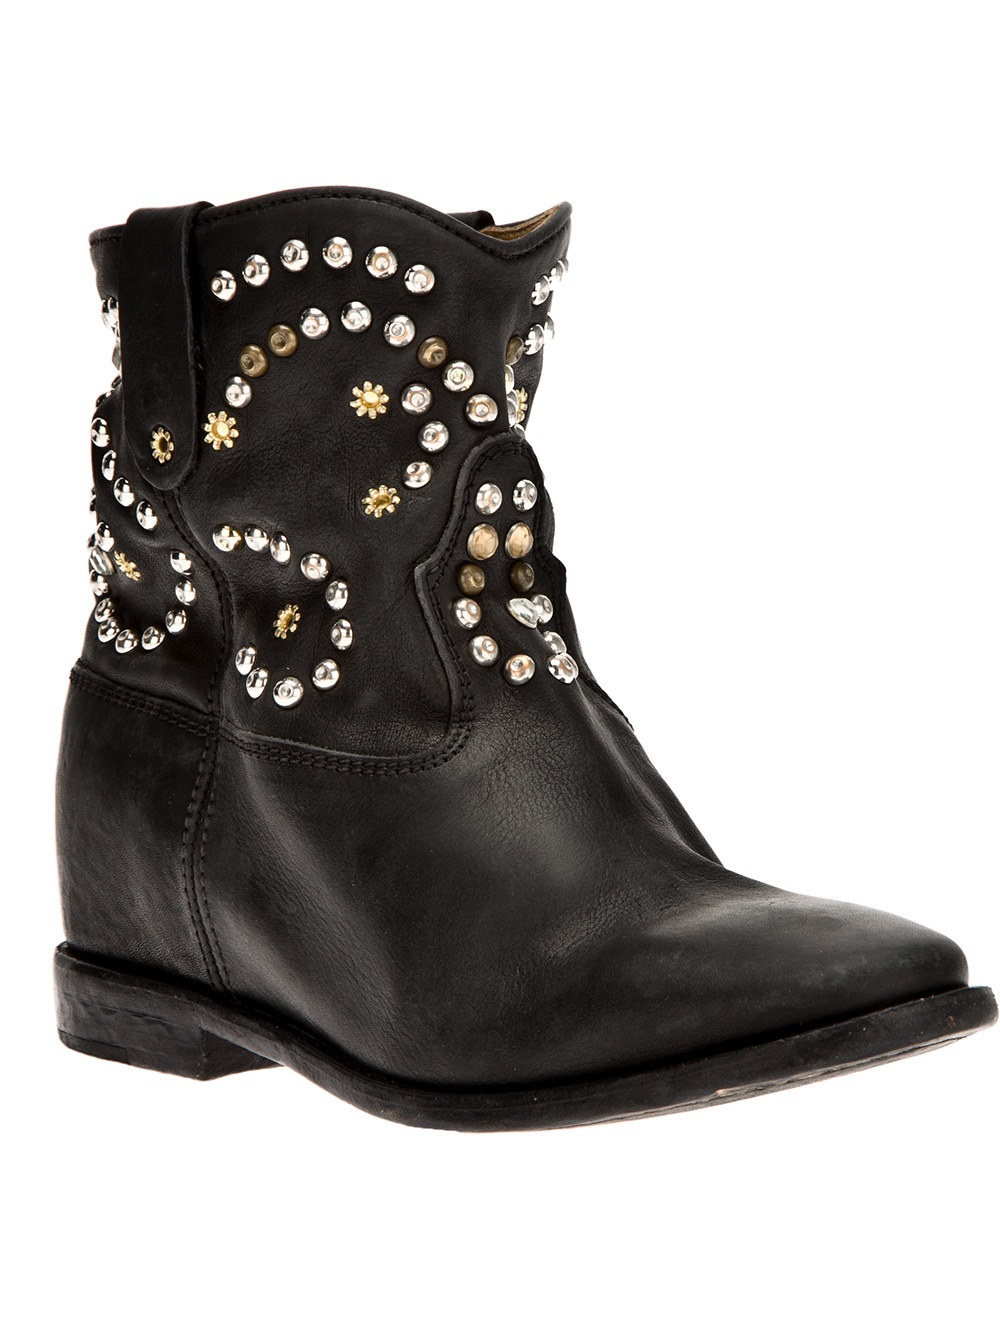 isabel marant caleen ankle boot in black lyst. Black Bedroom Furniture Sets. Home Design Ideas